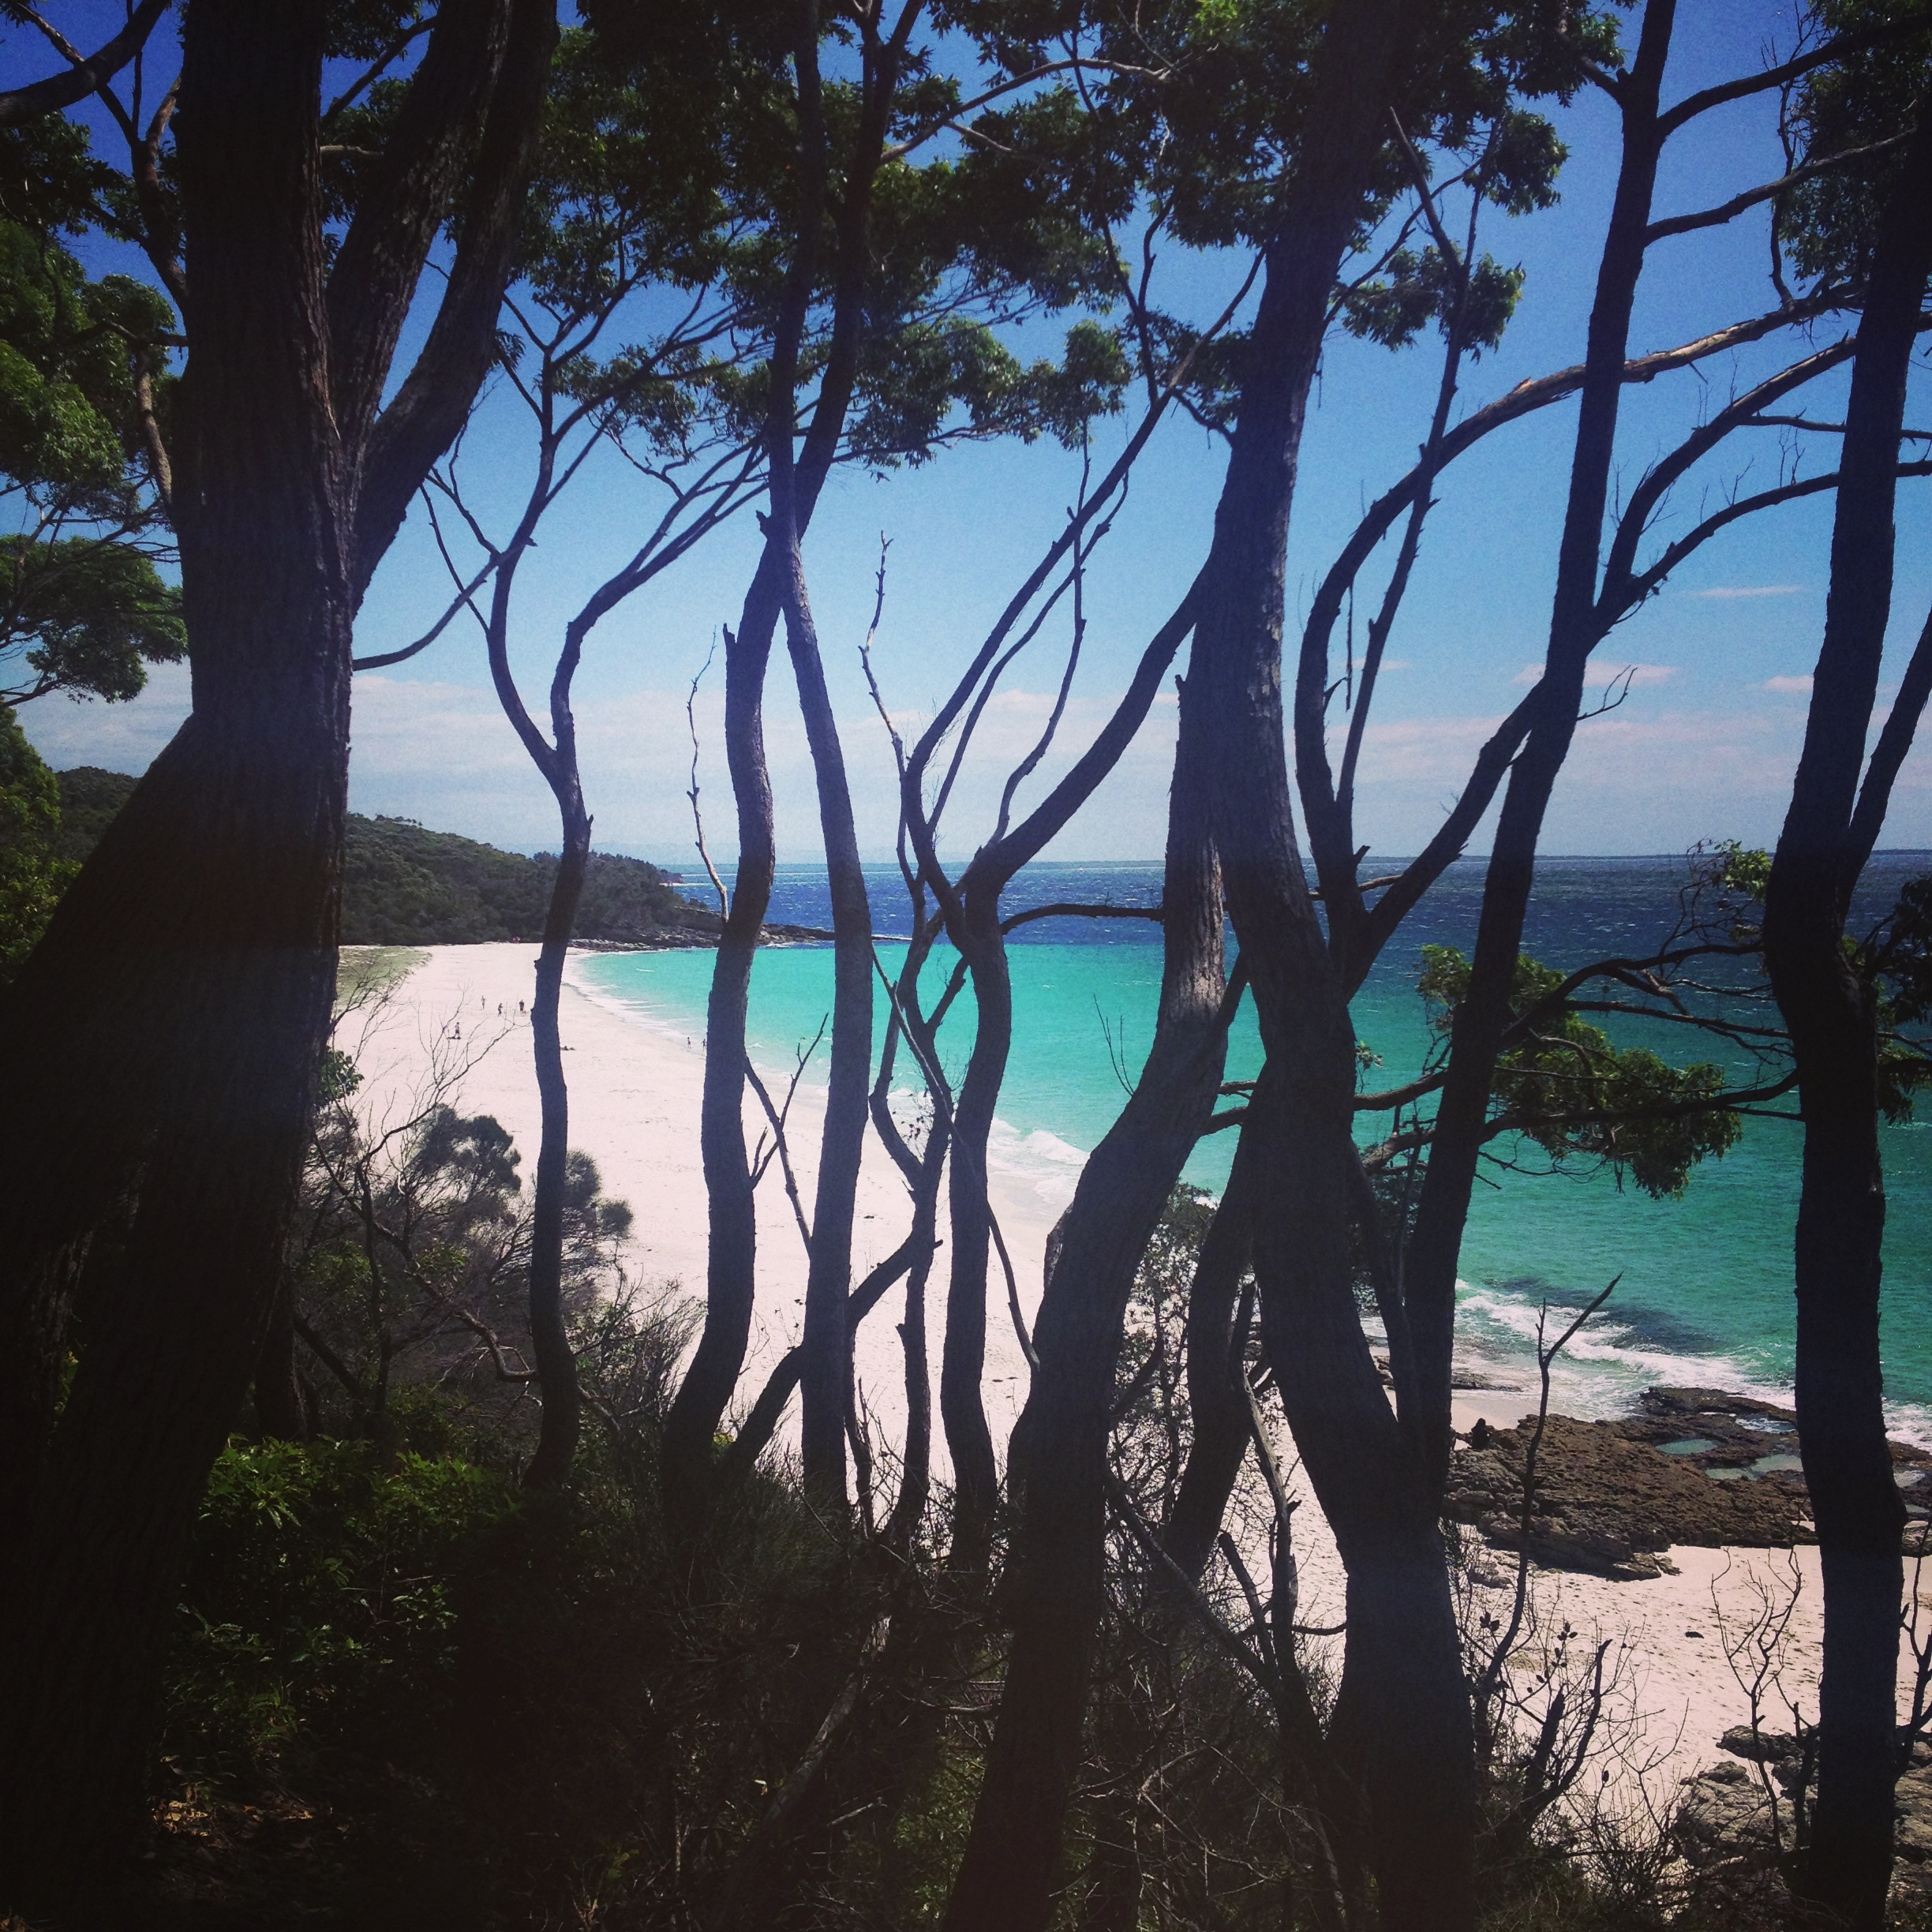 chinamans beach Hyams Beach.JPG